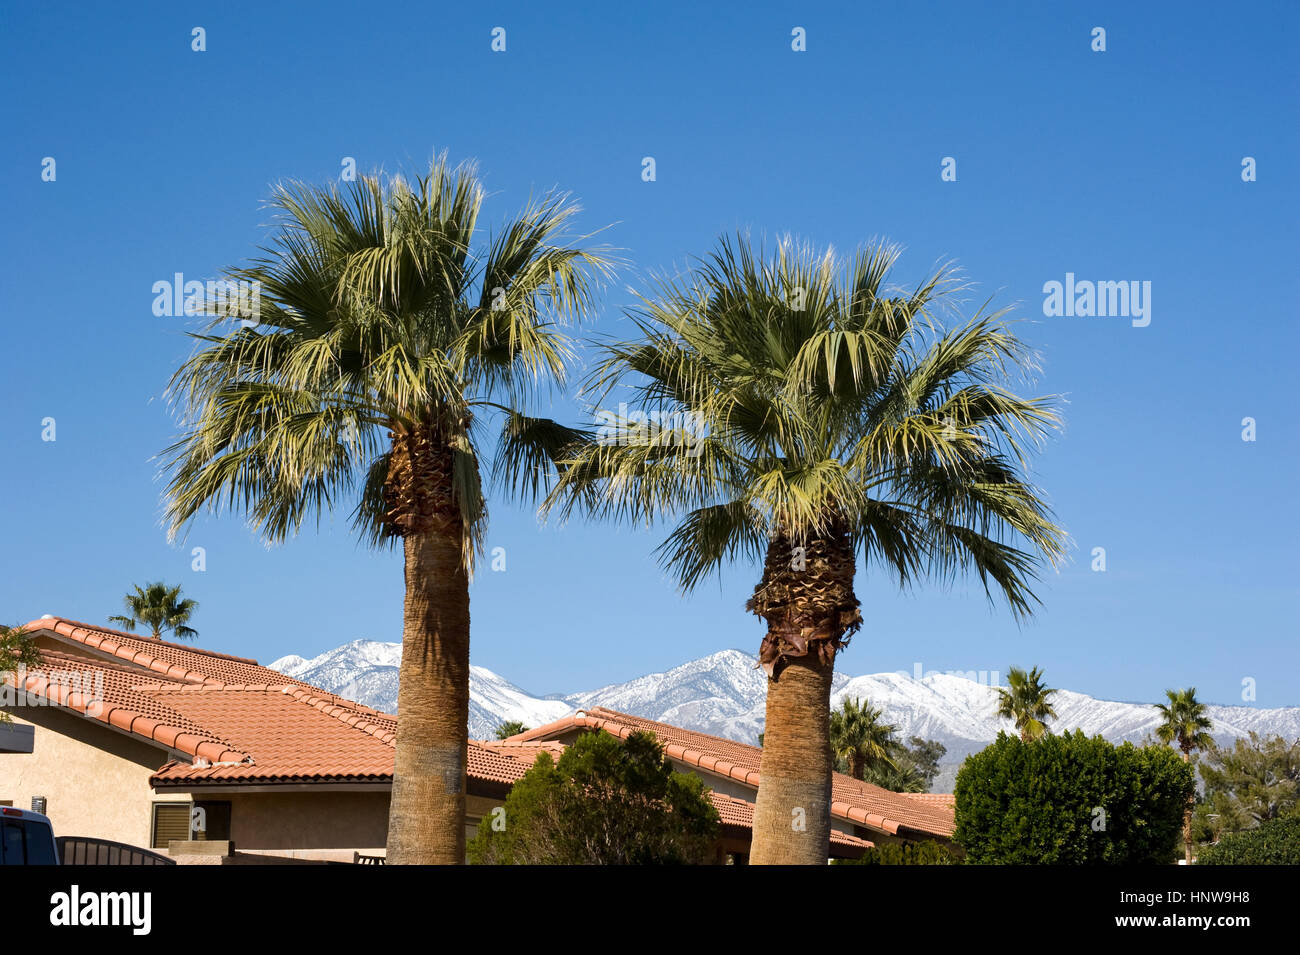 Rooftops of homes with palm trees and snow on mountains in Palm Desert - Stock Image